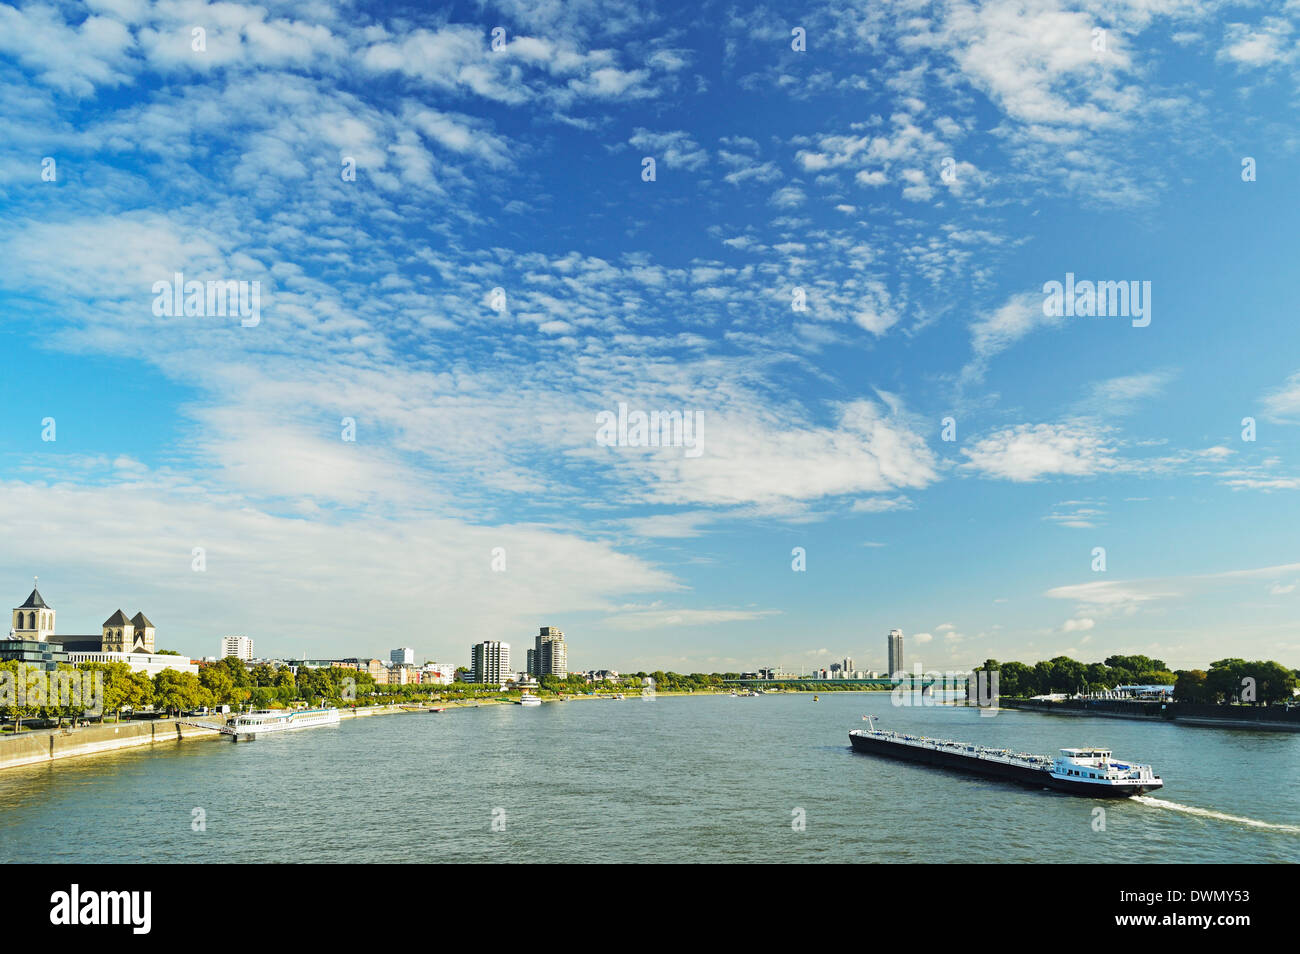 River Rhine, Cologne, North Rhine-Westphalia, Germany, Europe - Stock Image